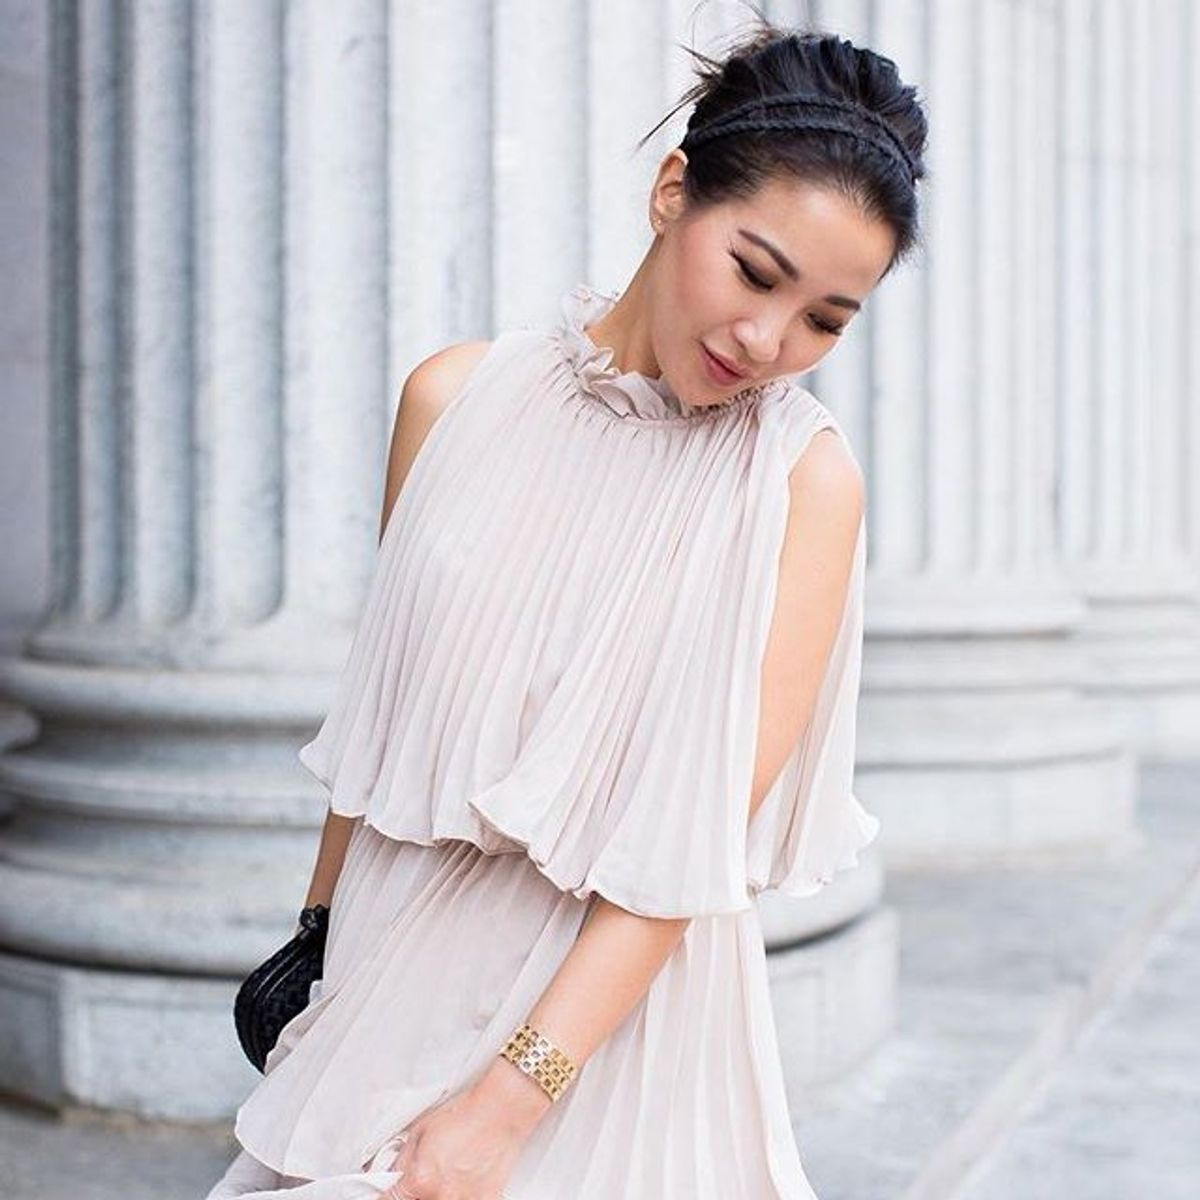 26 of Todays Magical  OOTD Photos for Girls Who Want to Kill It  on IG  ...